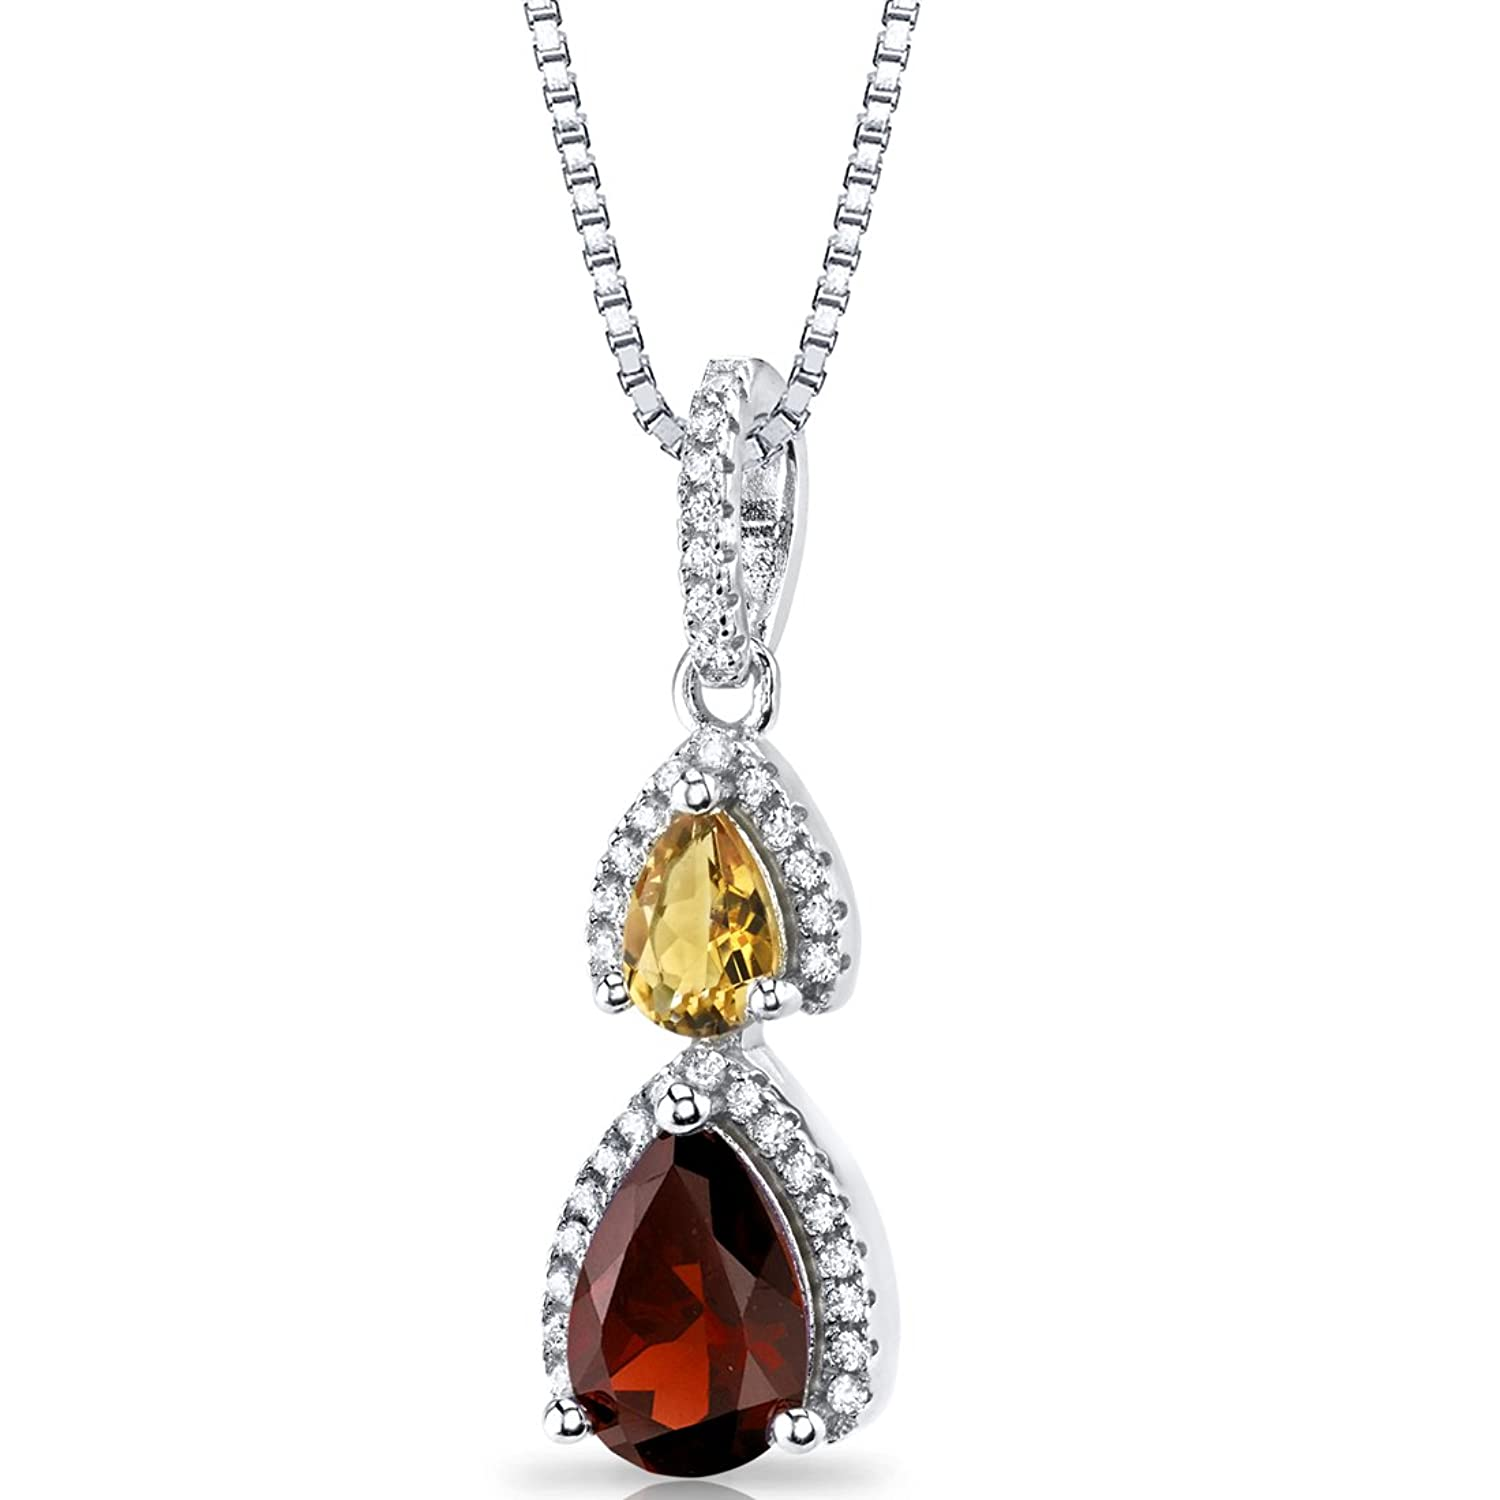 Garnet and Citrine Open Halo Pendant Necklace Sterling Silver 2 Stone 1.75 Carats Total